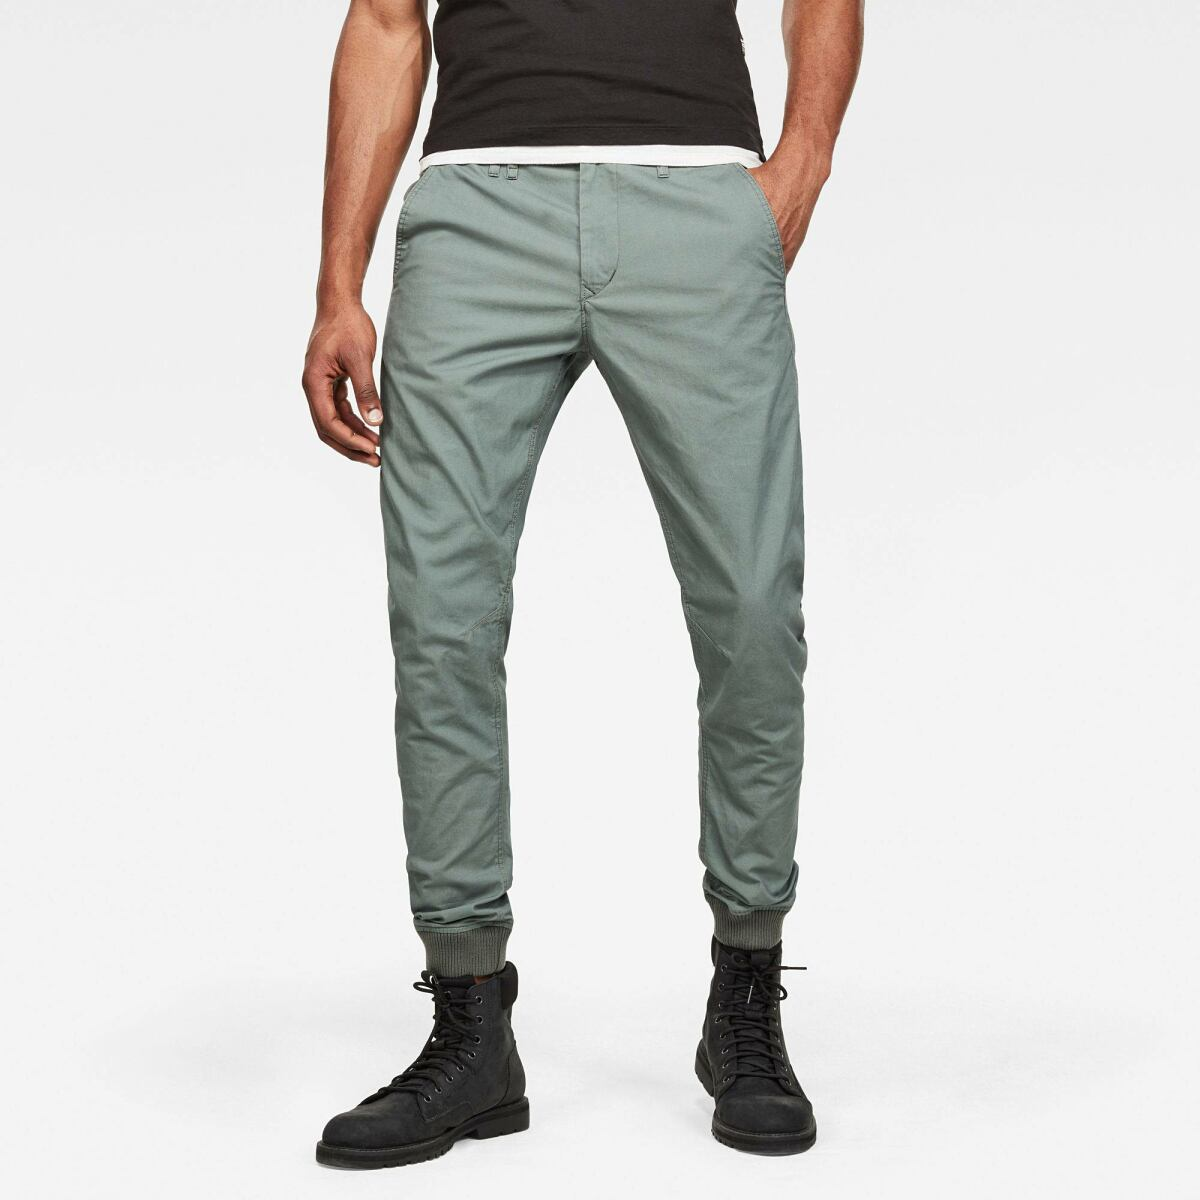 Green Man Pants Vetar Cuffed Slim Chino G-Star MEN